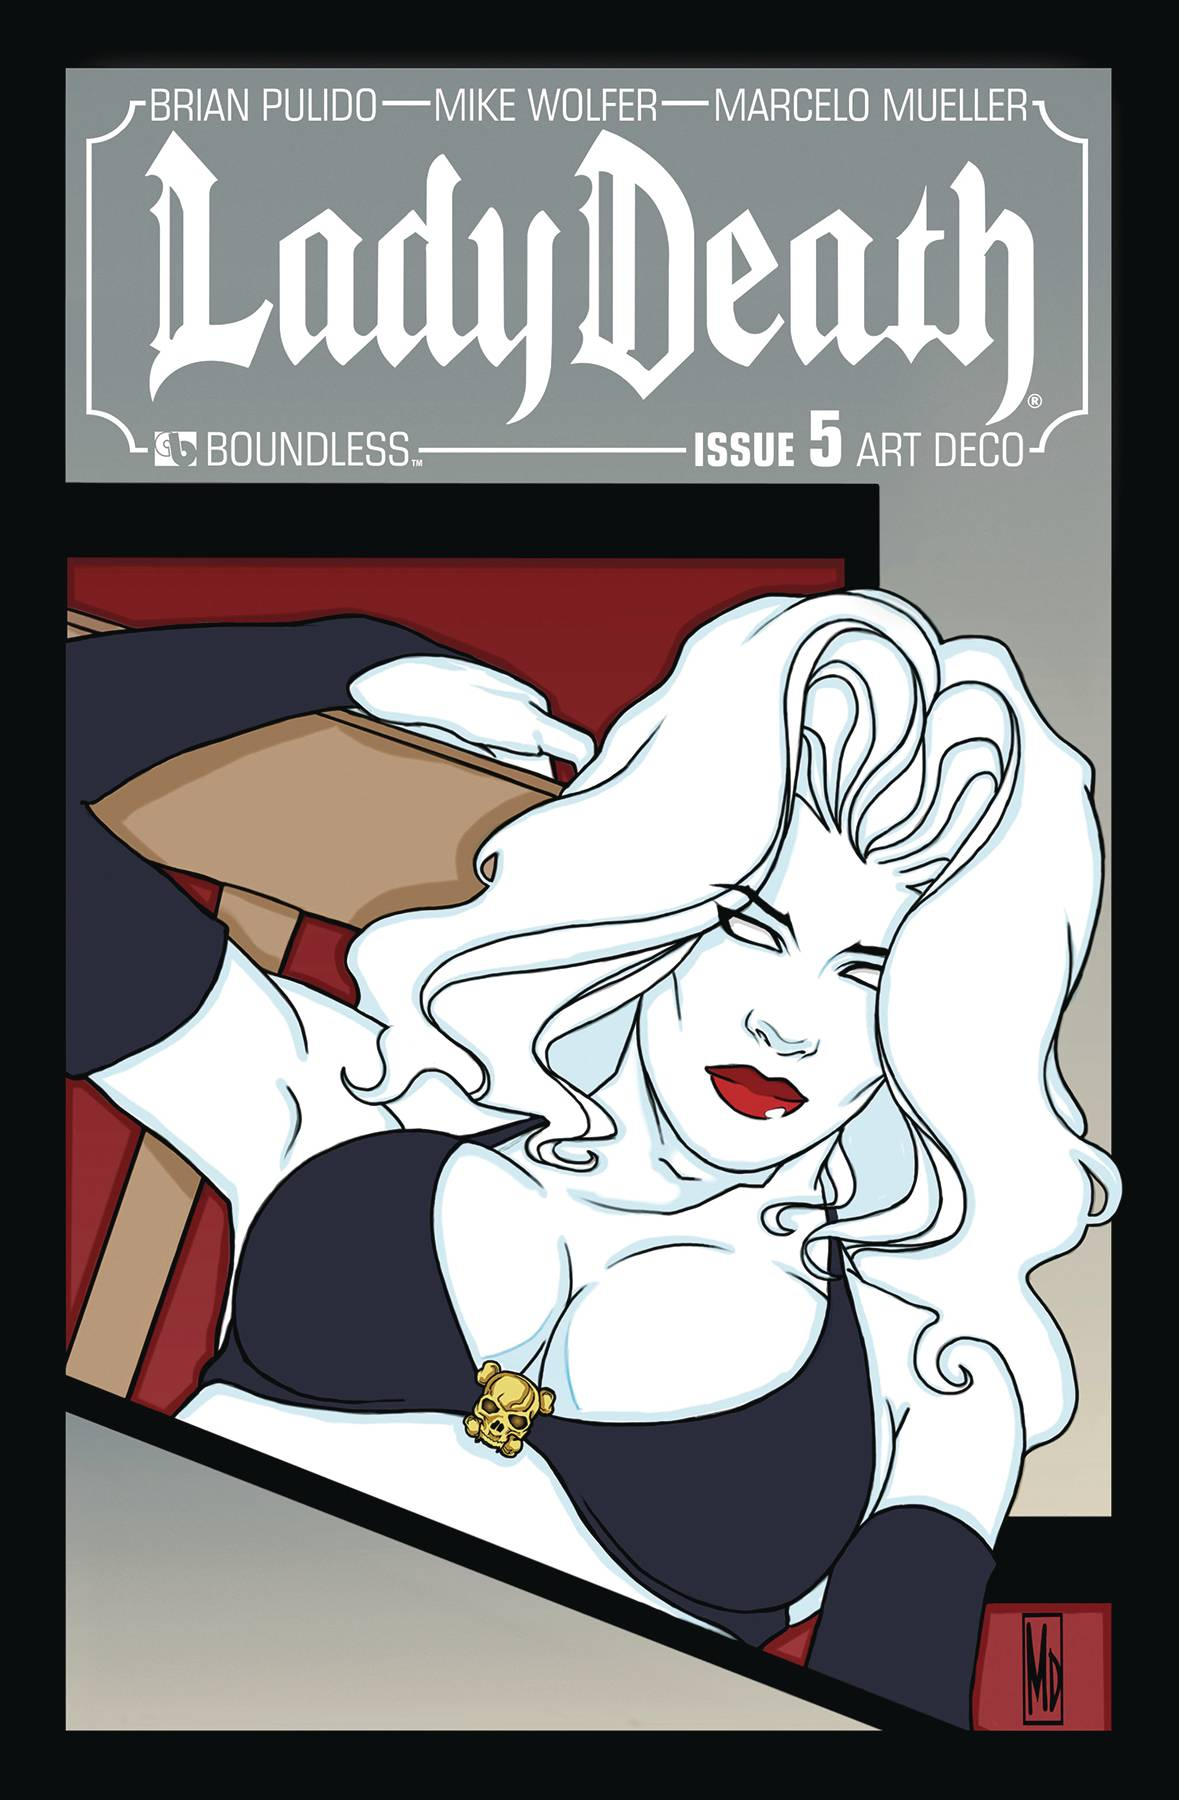 LADY DEATH #5 ART DECO VARIANT